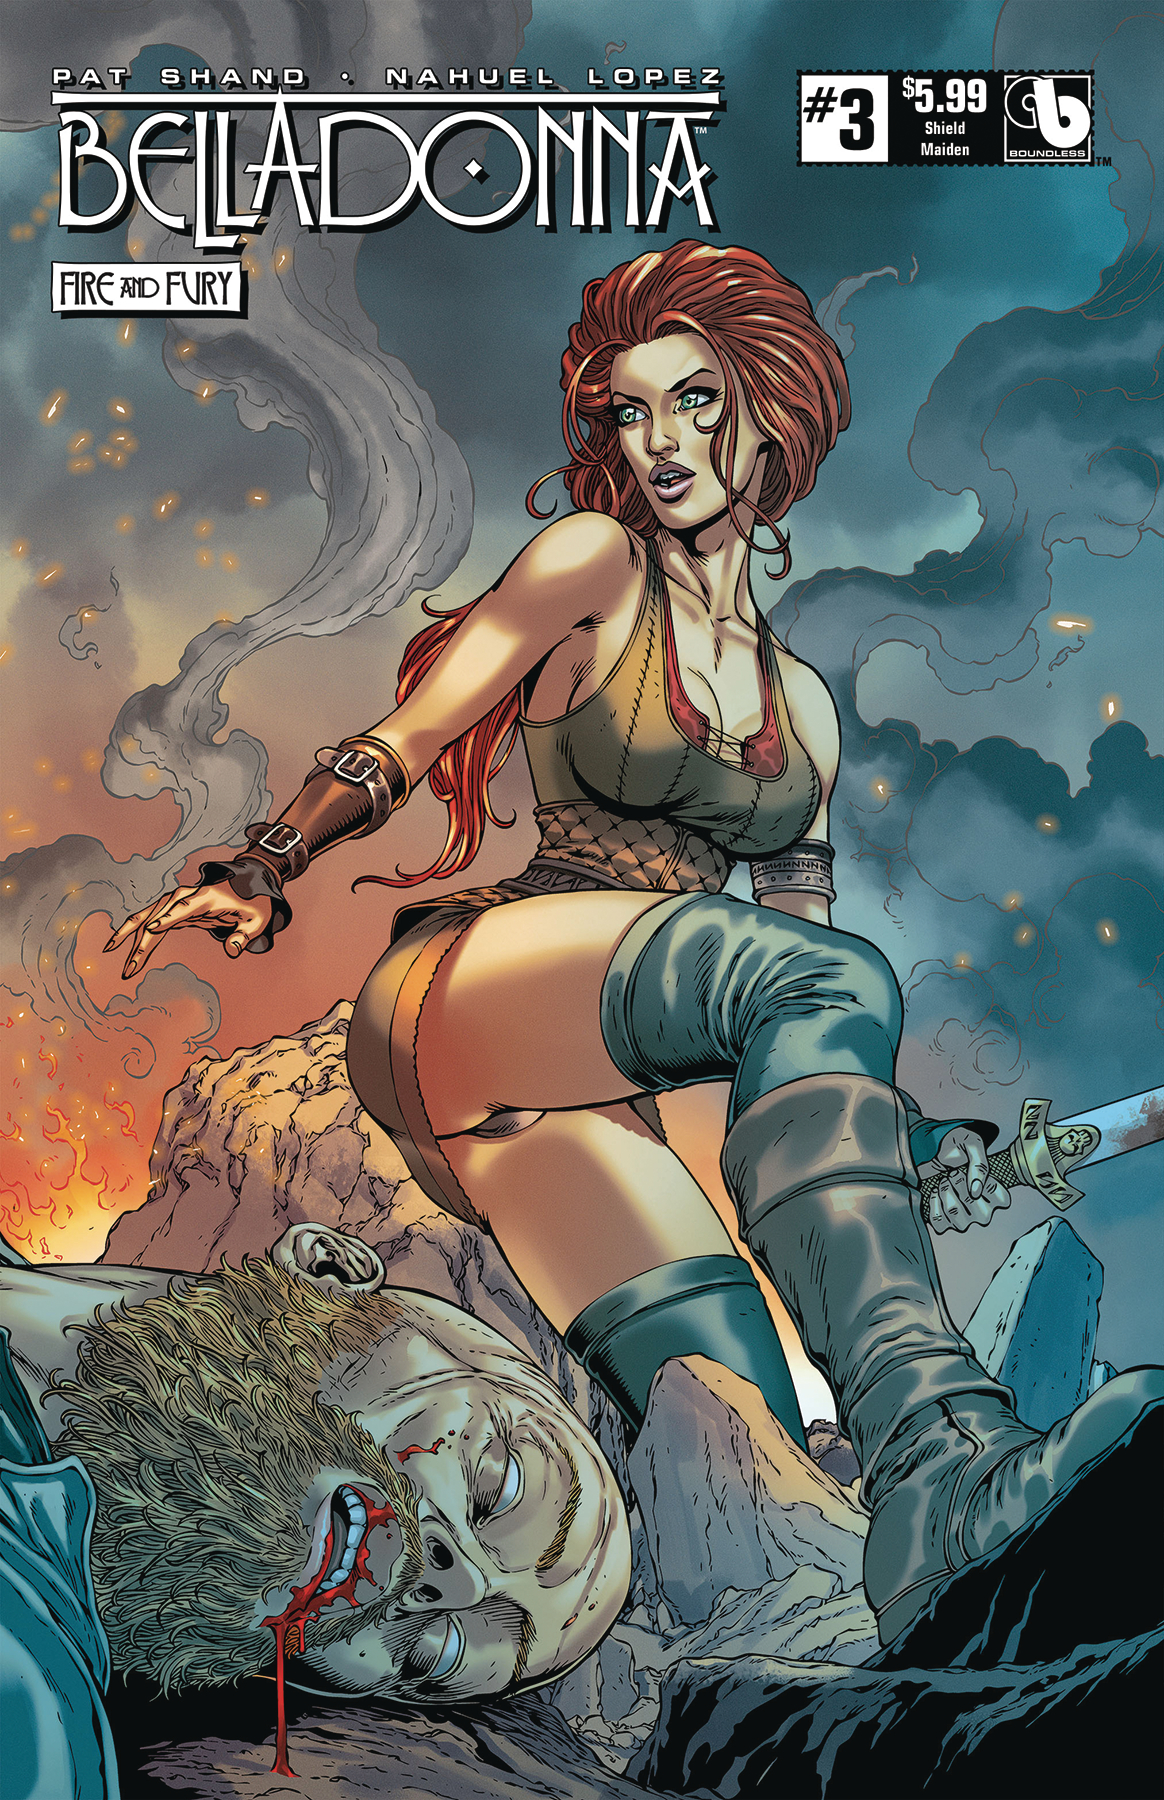 BELLADONNA FIRE FURY #3 SHIELD MAIDEN (MR)